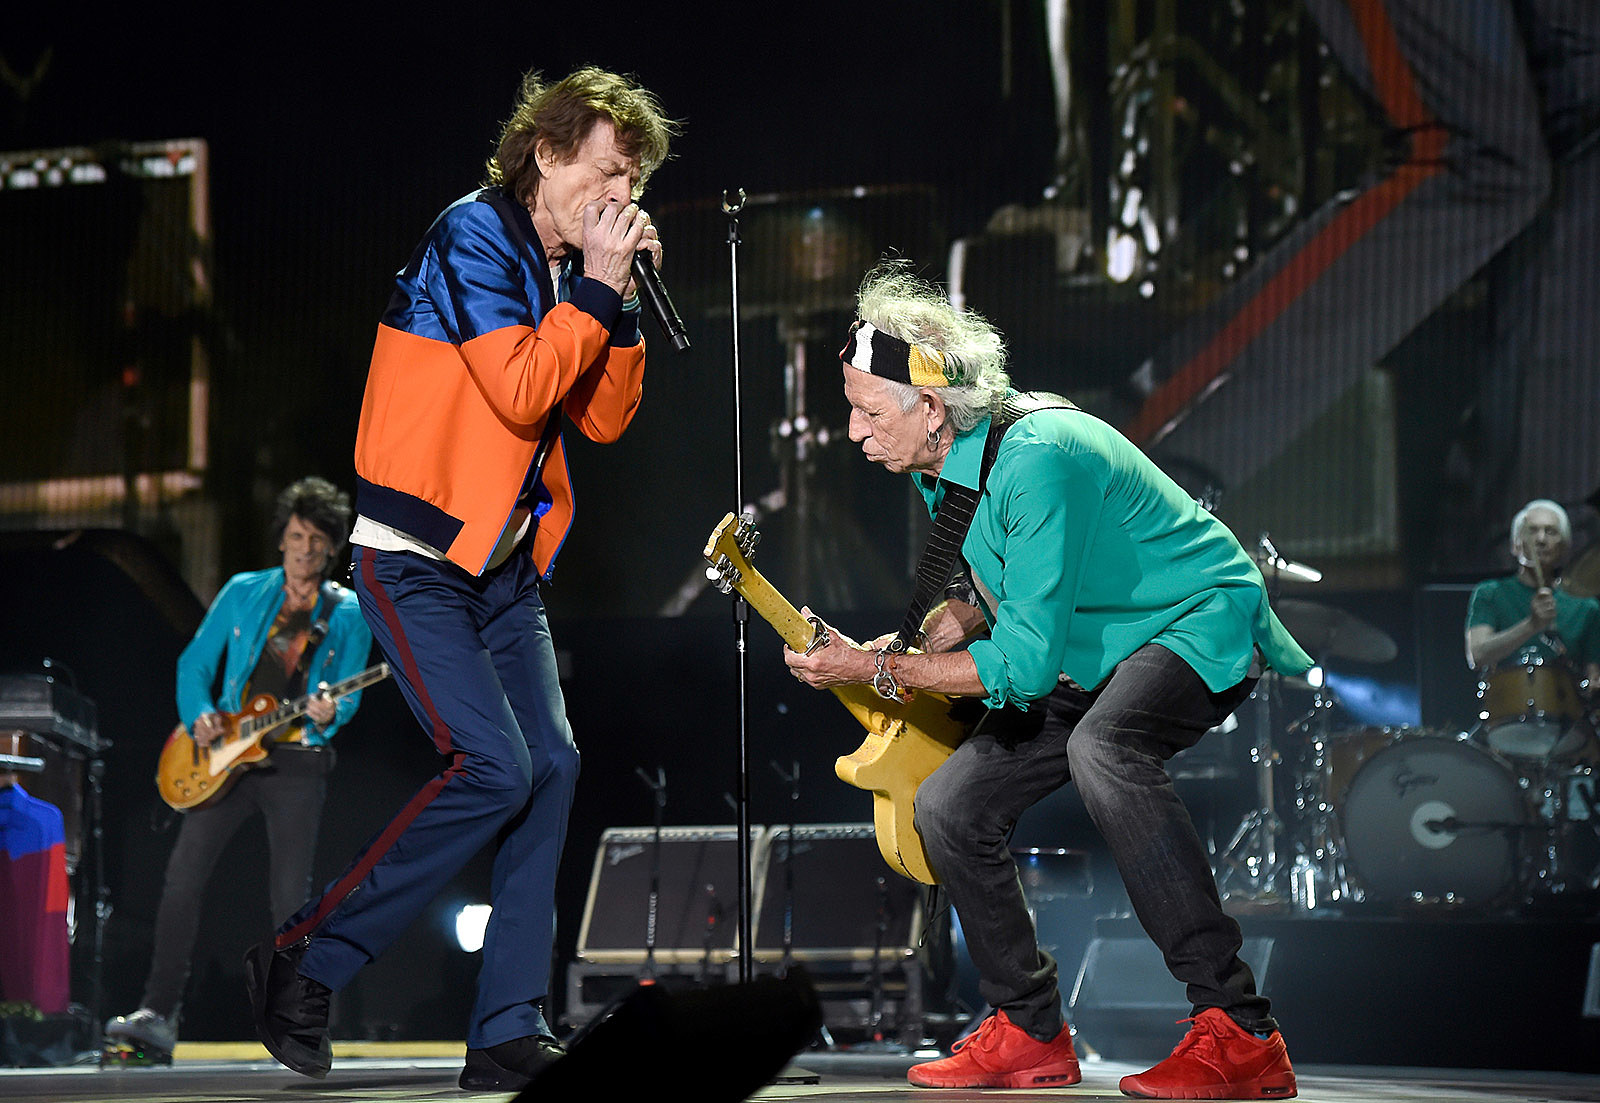 Rolling Stones Tour Coming To Gillette Stadium Next Year